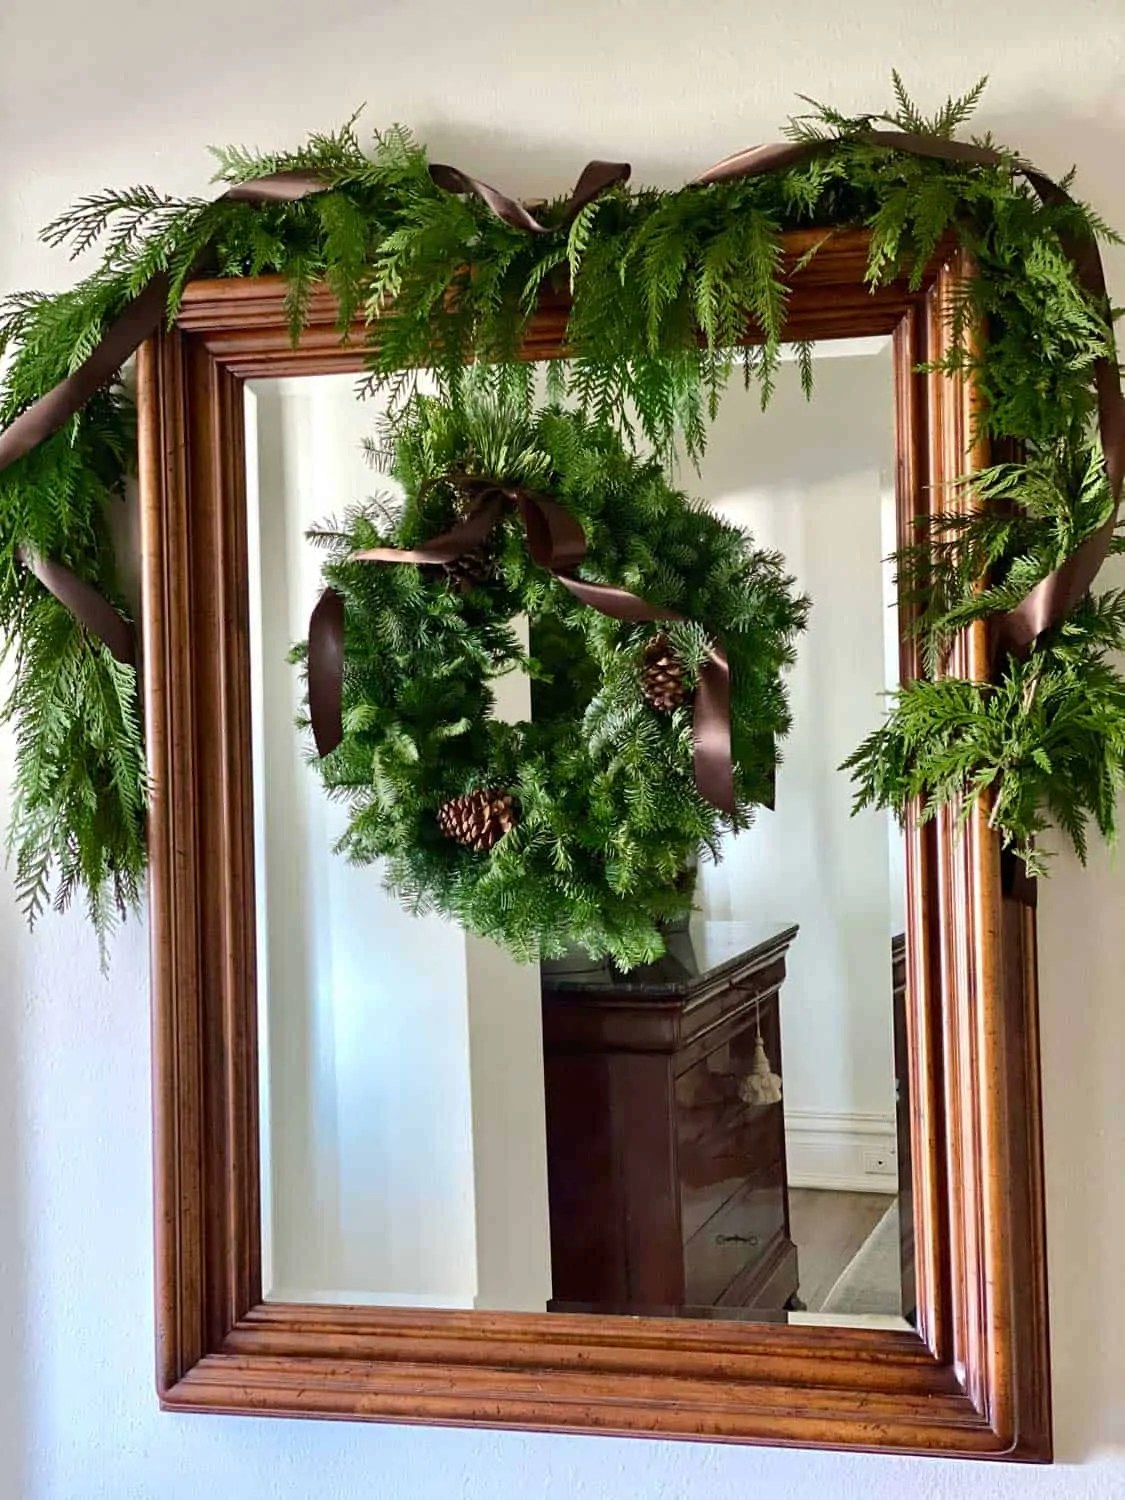 Mirror in Foyer decorated with pine swag and wreath